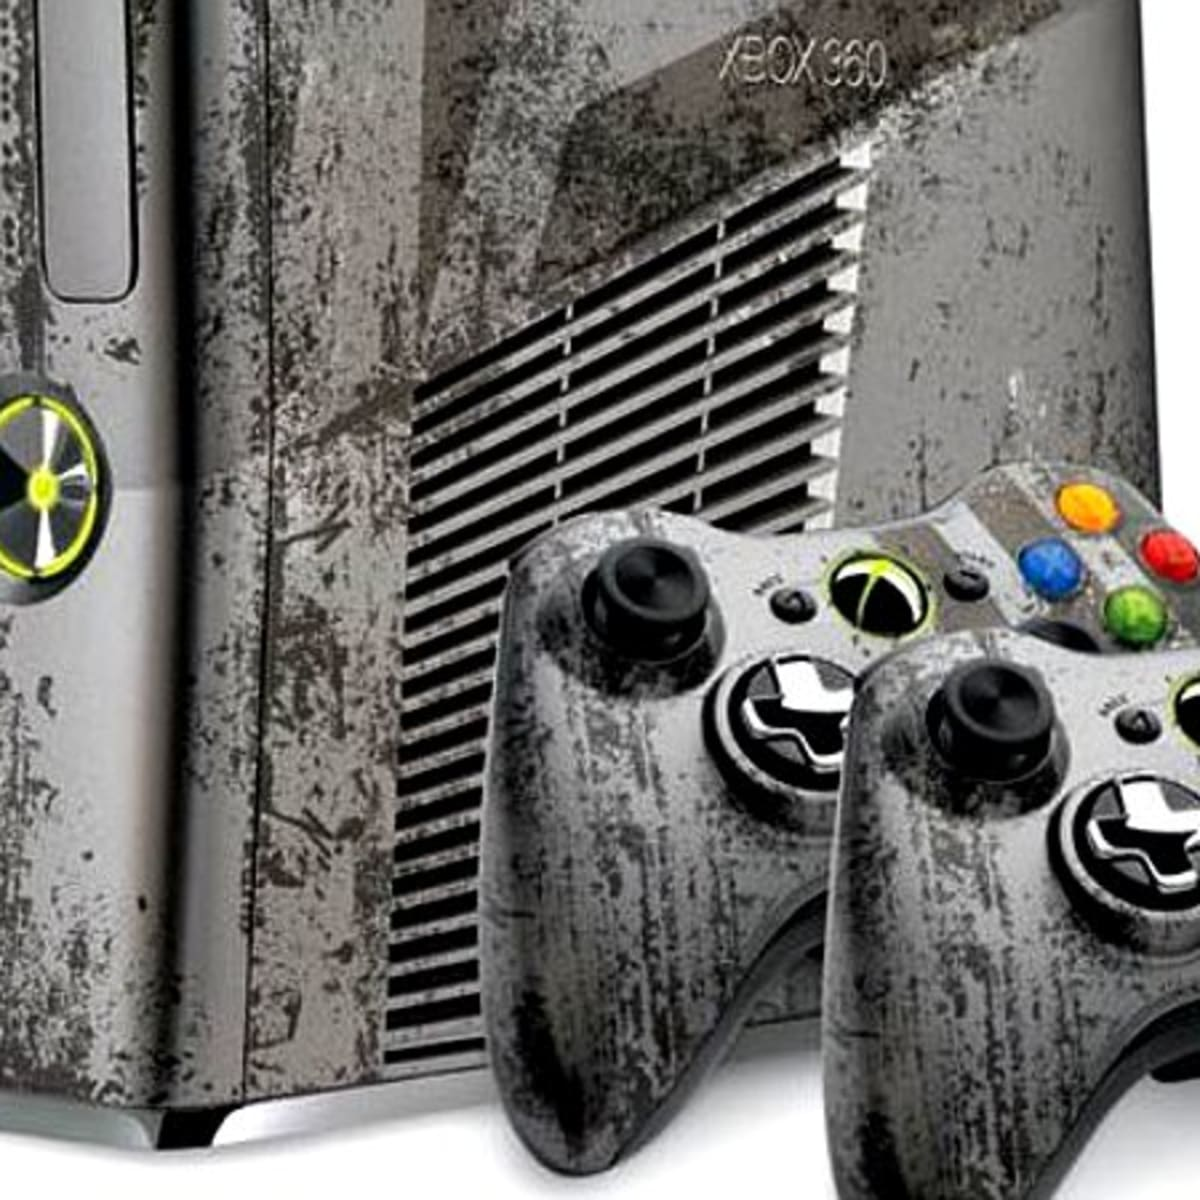 Xbox Limited Edition Xbox Call Of Duty